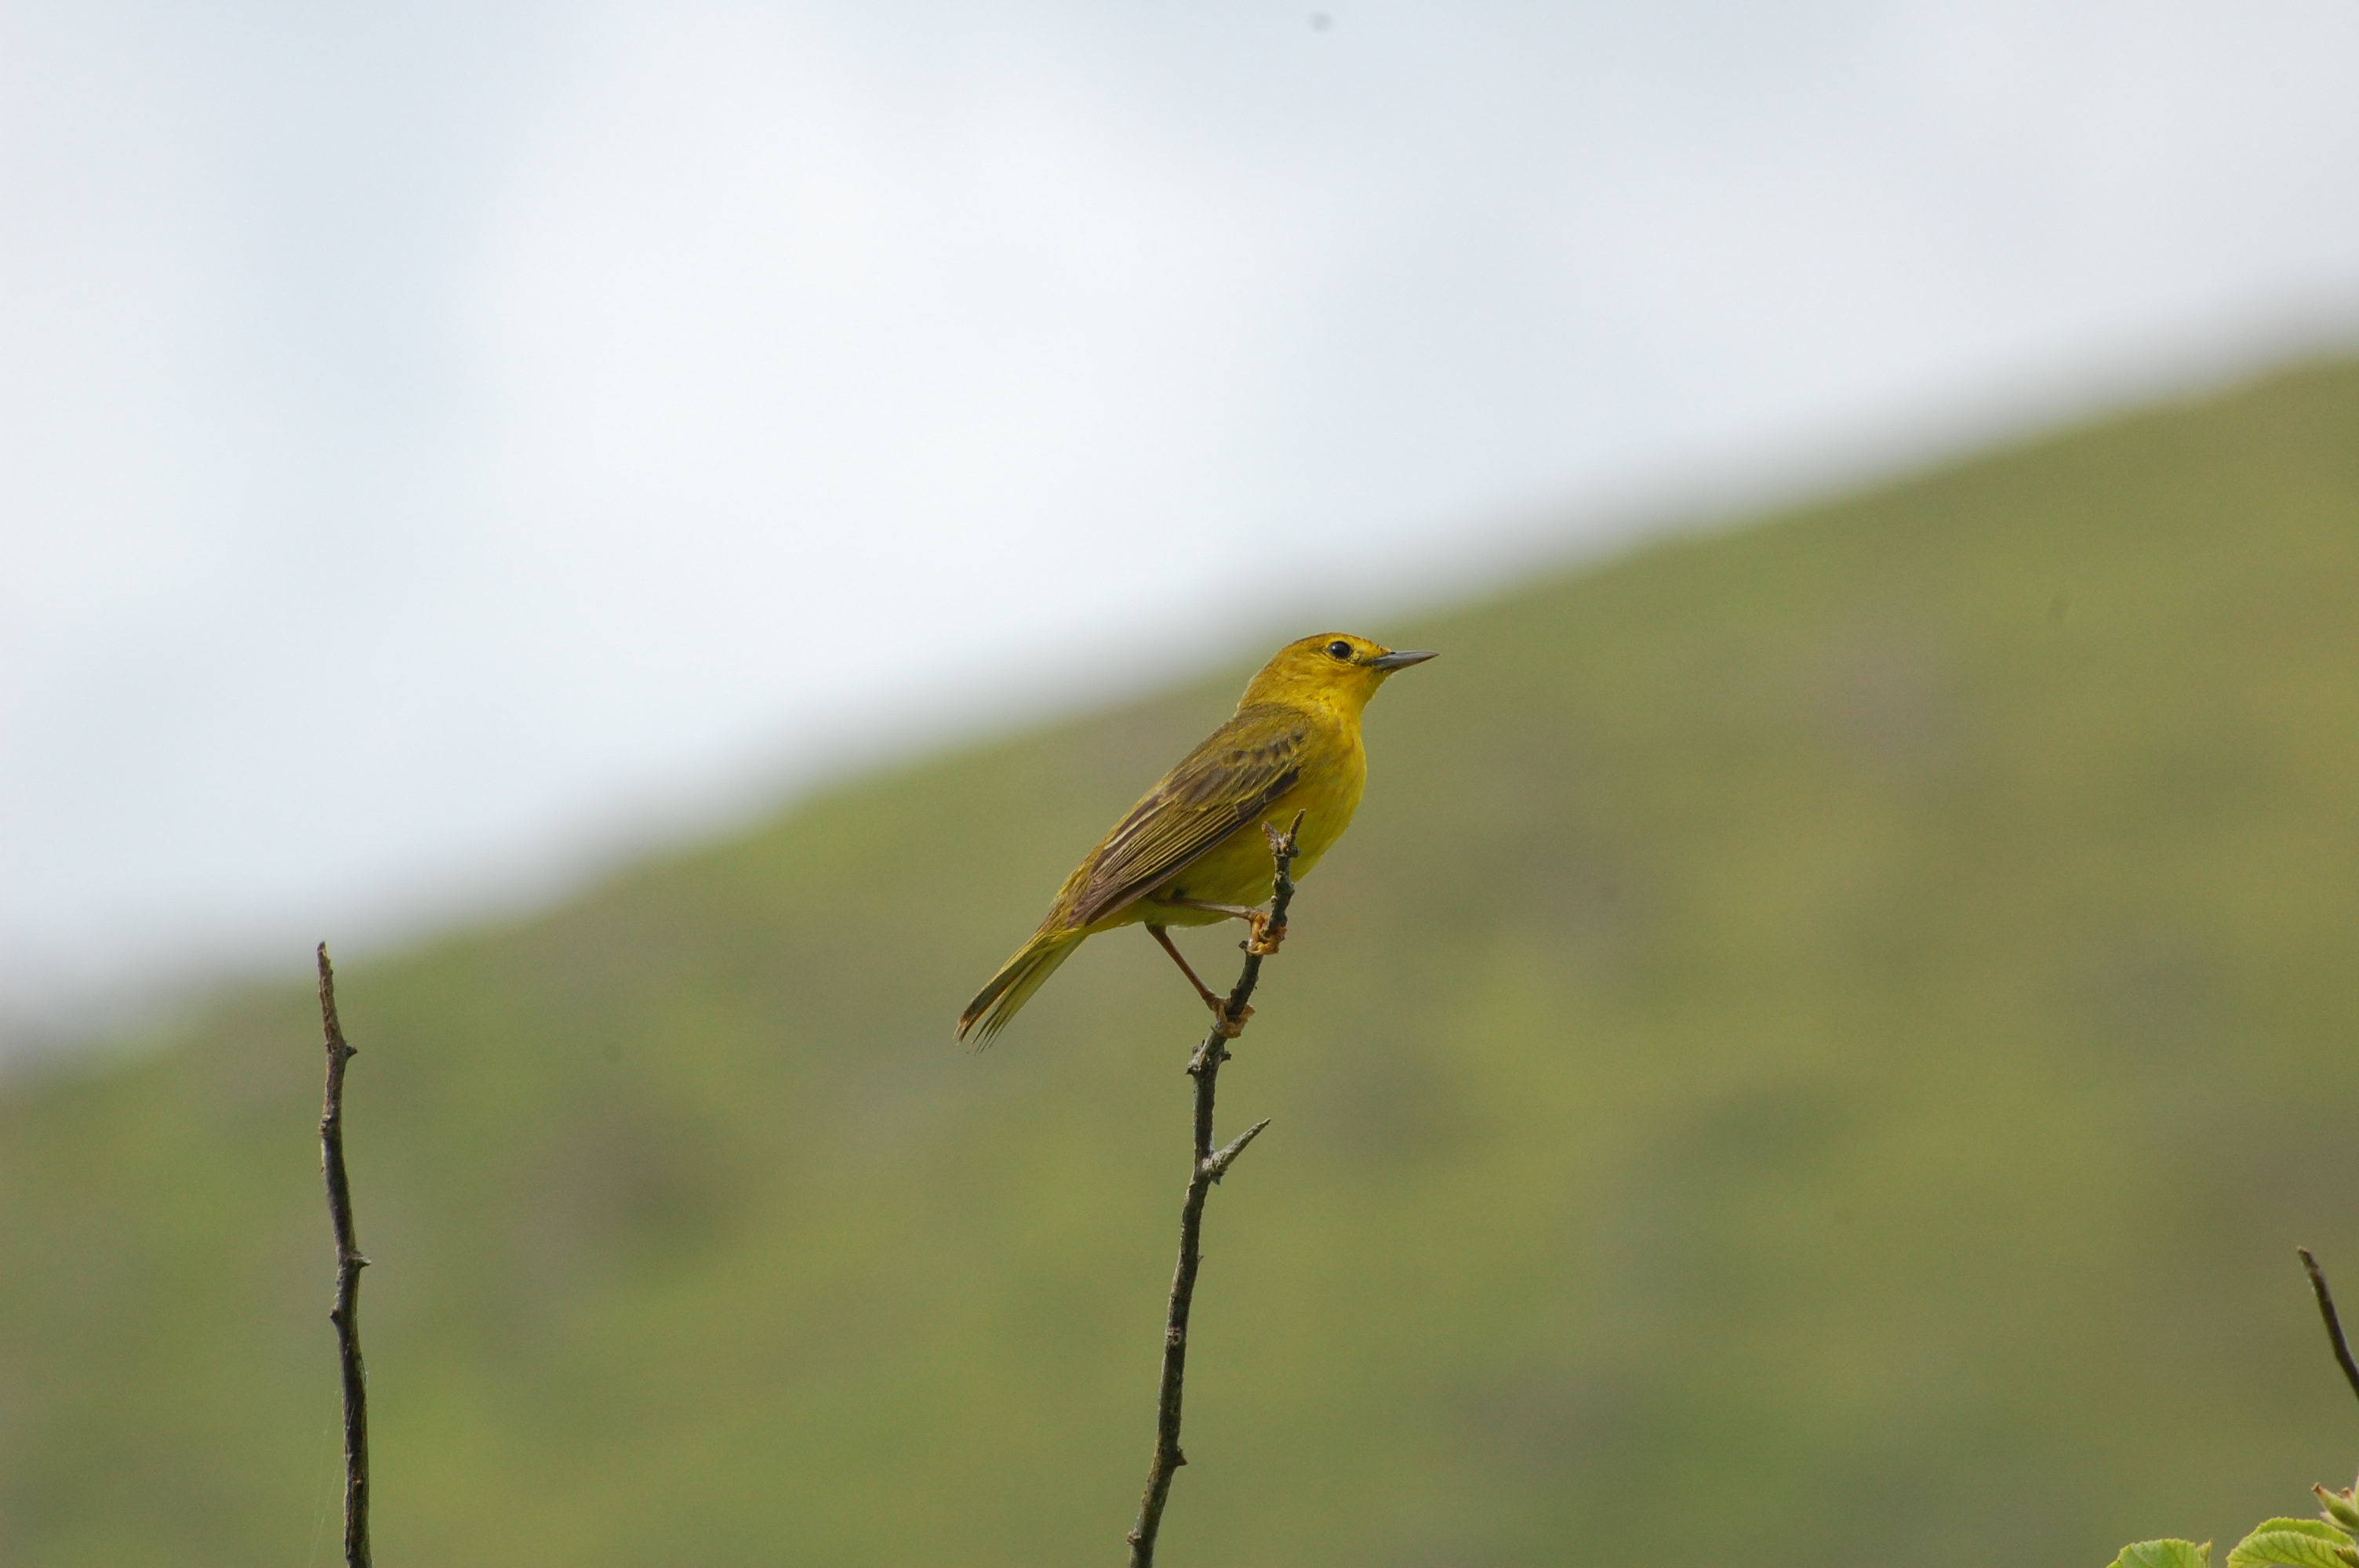 I believe this is a Yellow Warbler. If anyone knows for sure, please let me know.